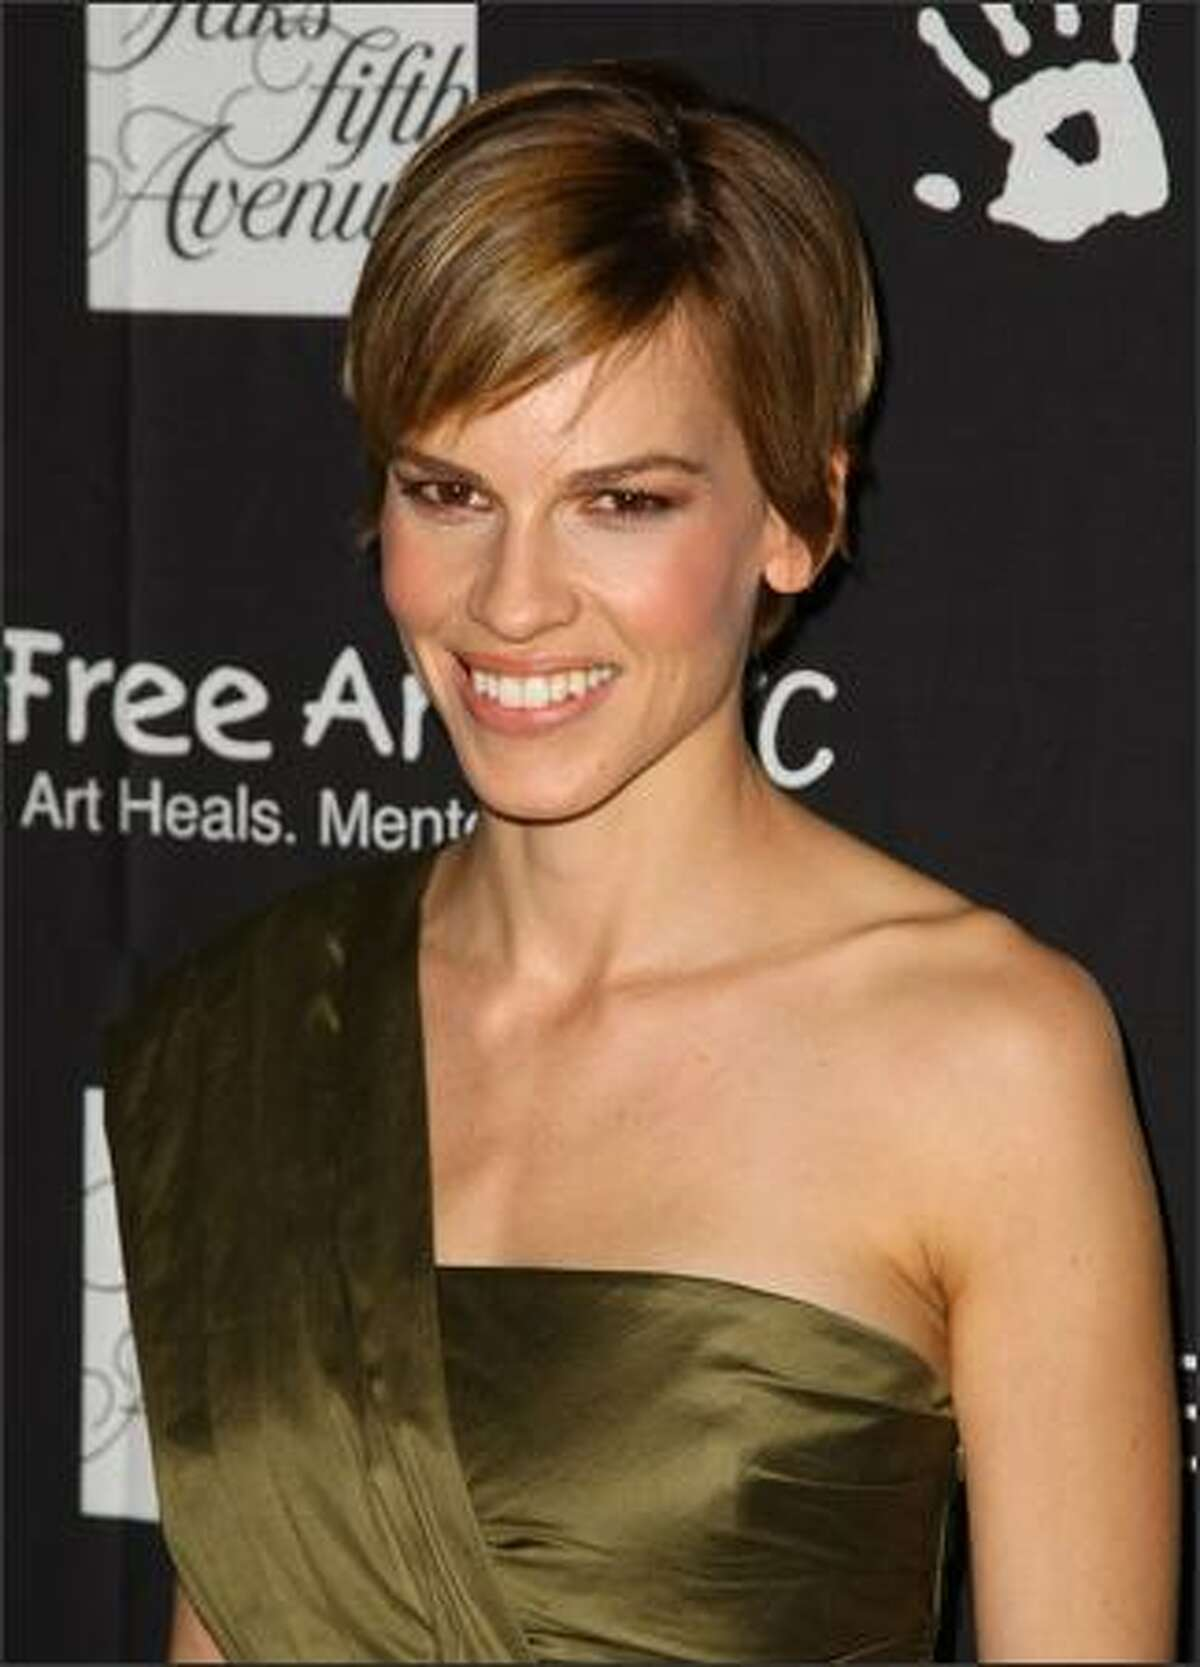 Actress Hilary Swank attends a celebration honoring Damiano Biella, the creative director of Escada, benefiting Free Arts NYC at Saks Fifth Avenue in New York City.